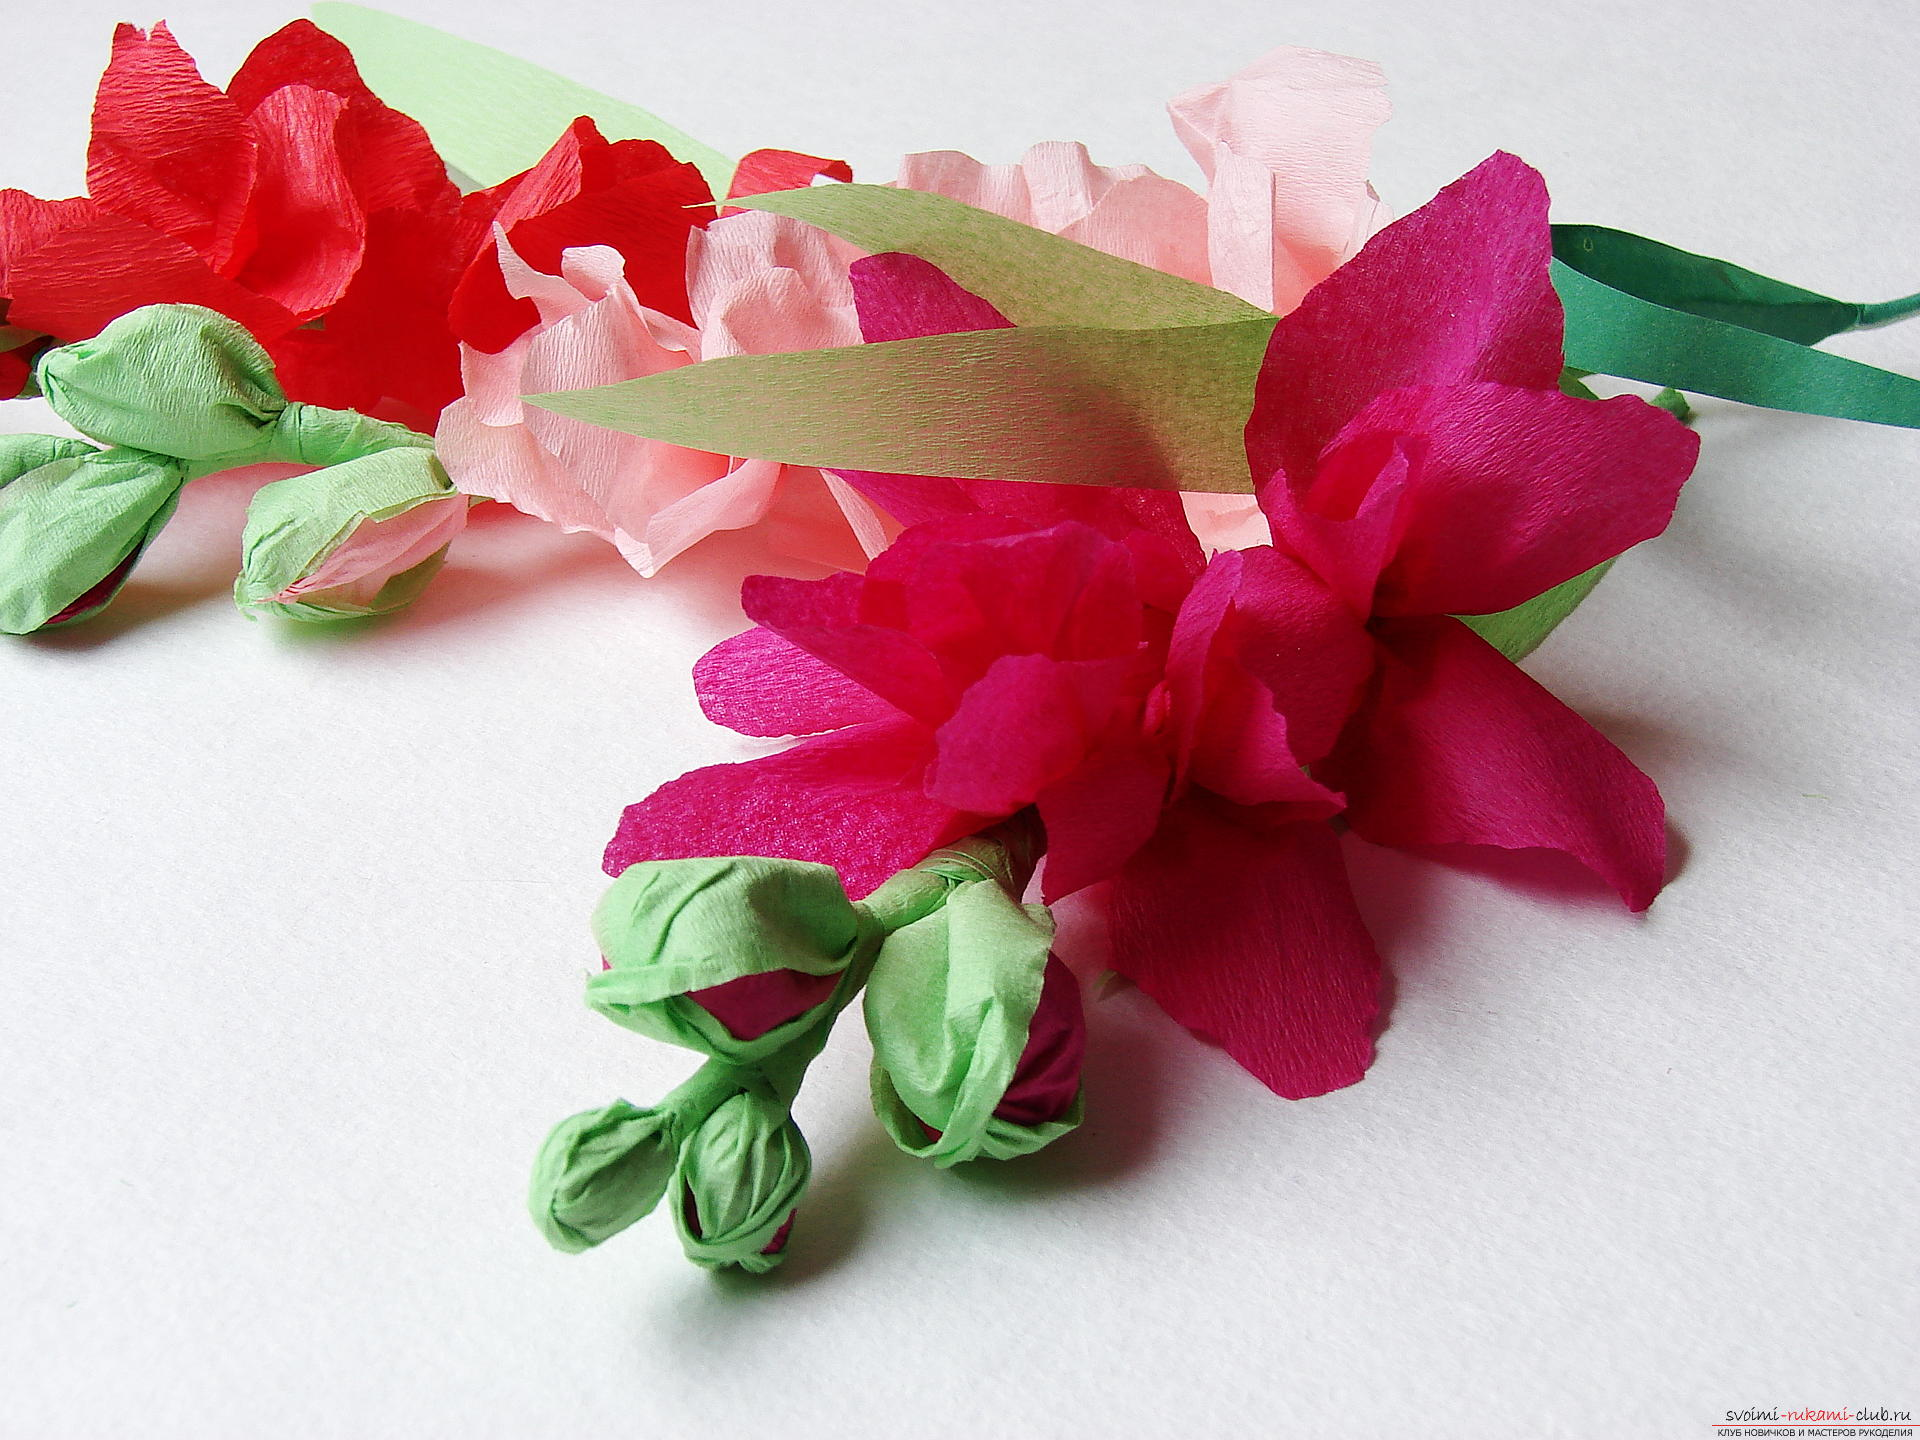 This master class will teach you how to make gladioli flowers from paper with your own hands. Photo # 31